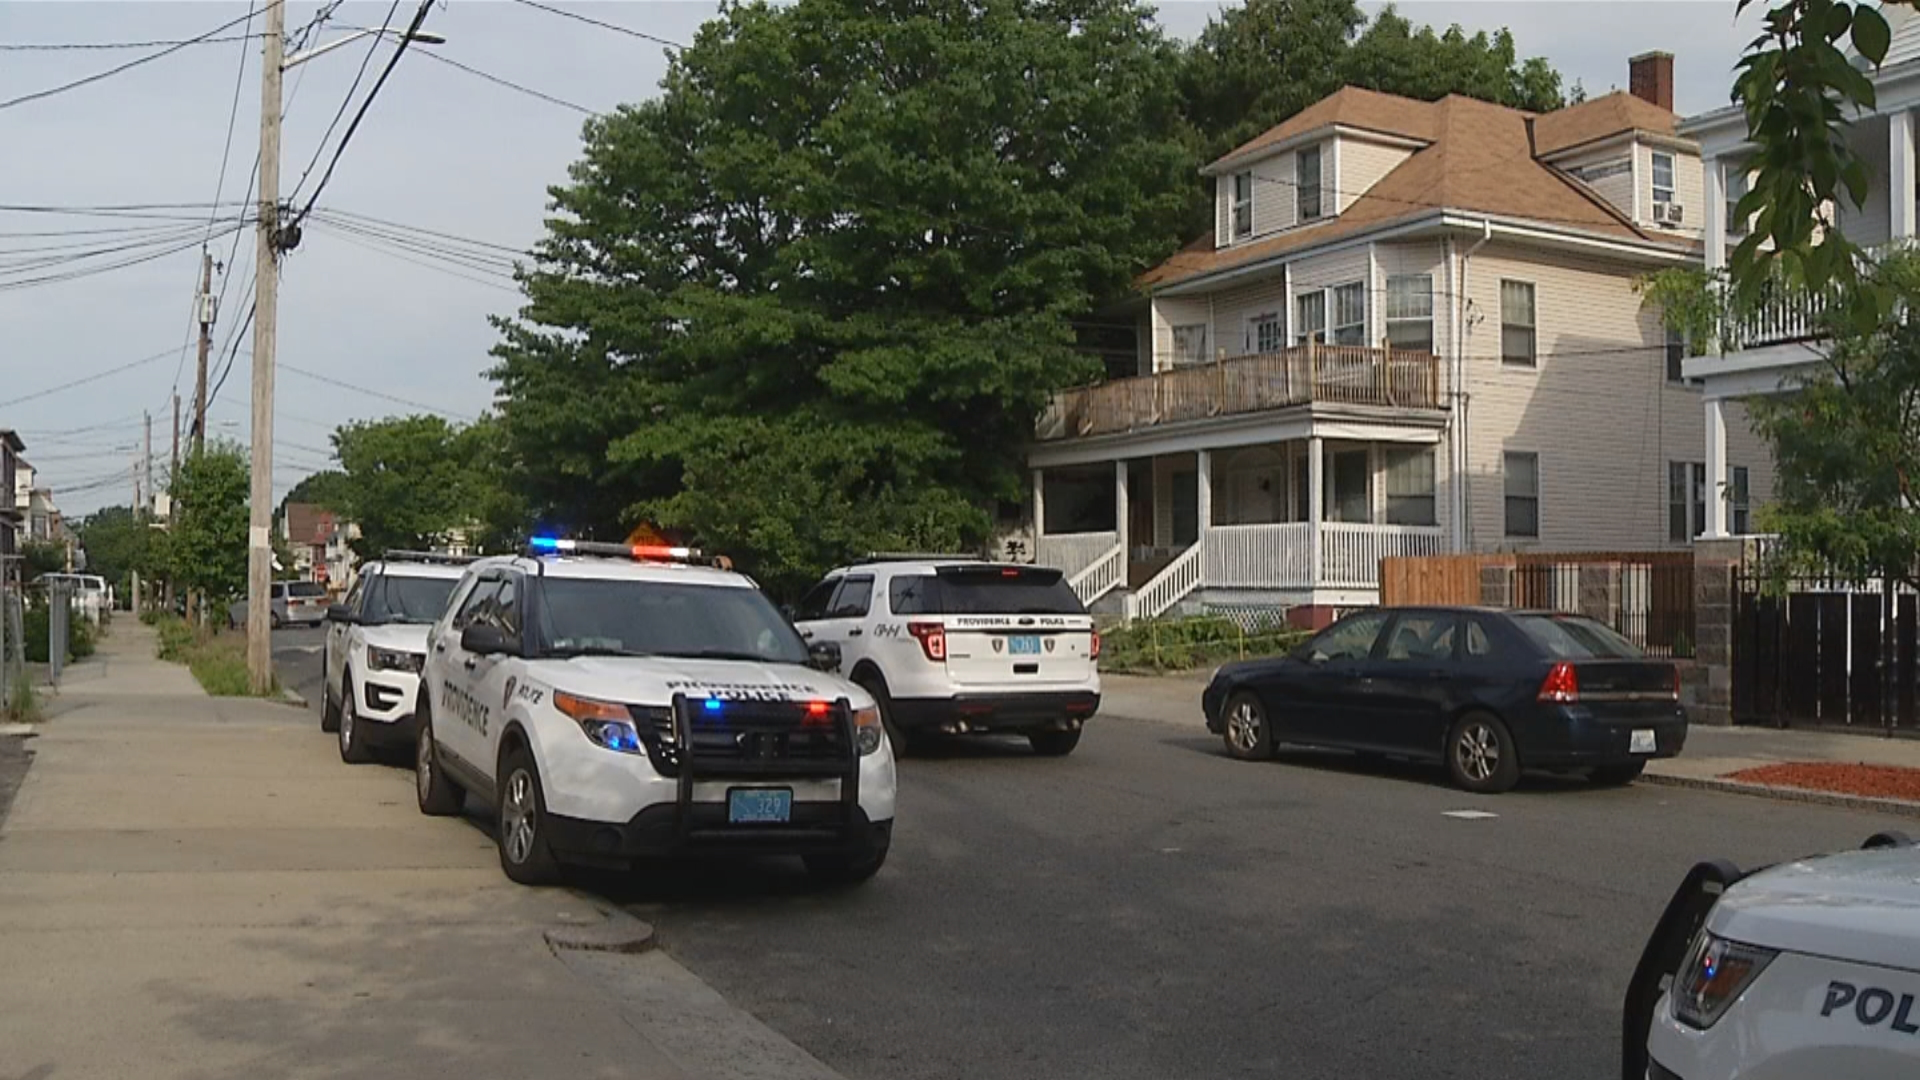 Providence animal control seized a dog that police said attacked a woman on Lenox Avenue, Monday, June 18, 2018. (WJAR)